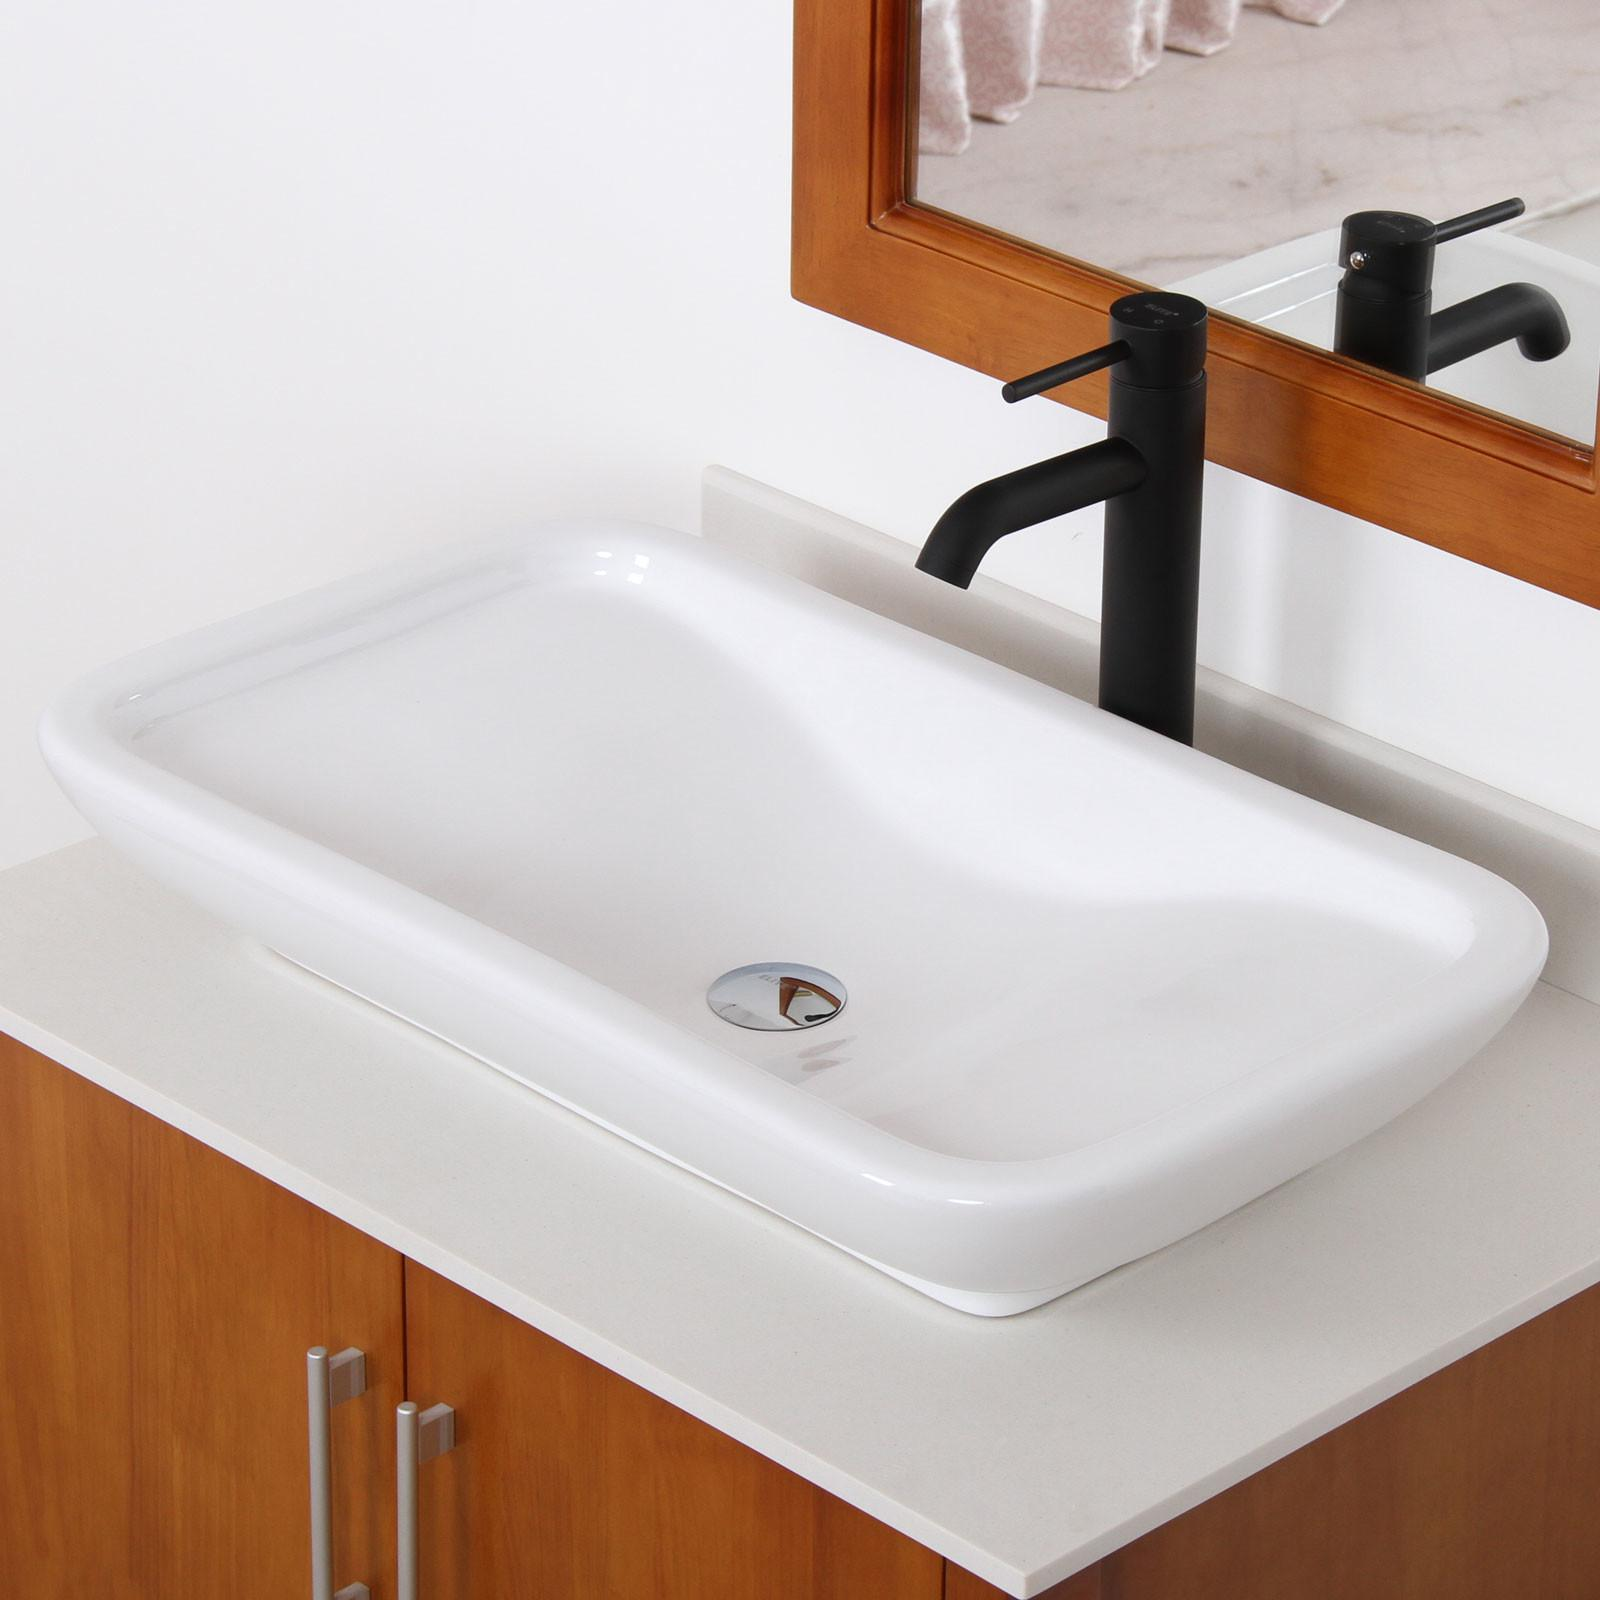 Elite Ceramic Bathroom Sink Unique Rectangle Design